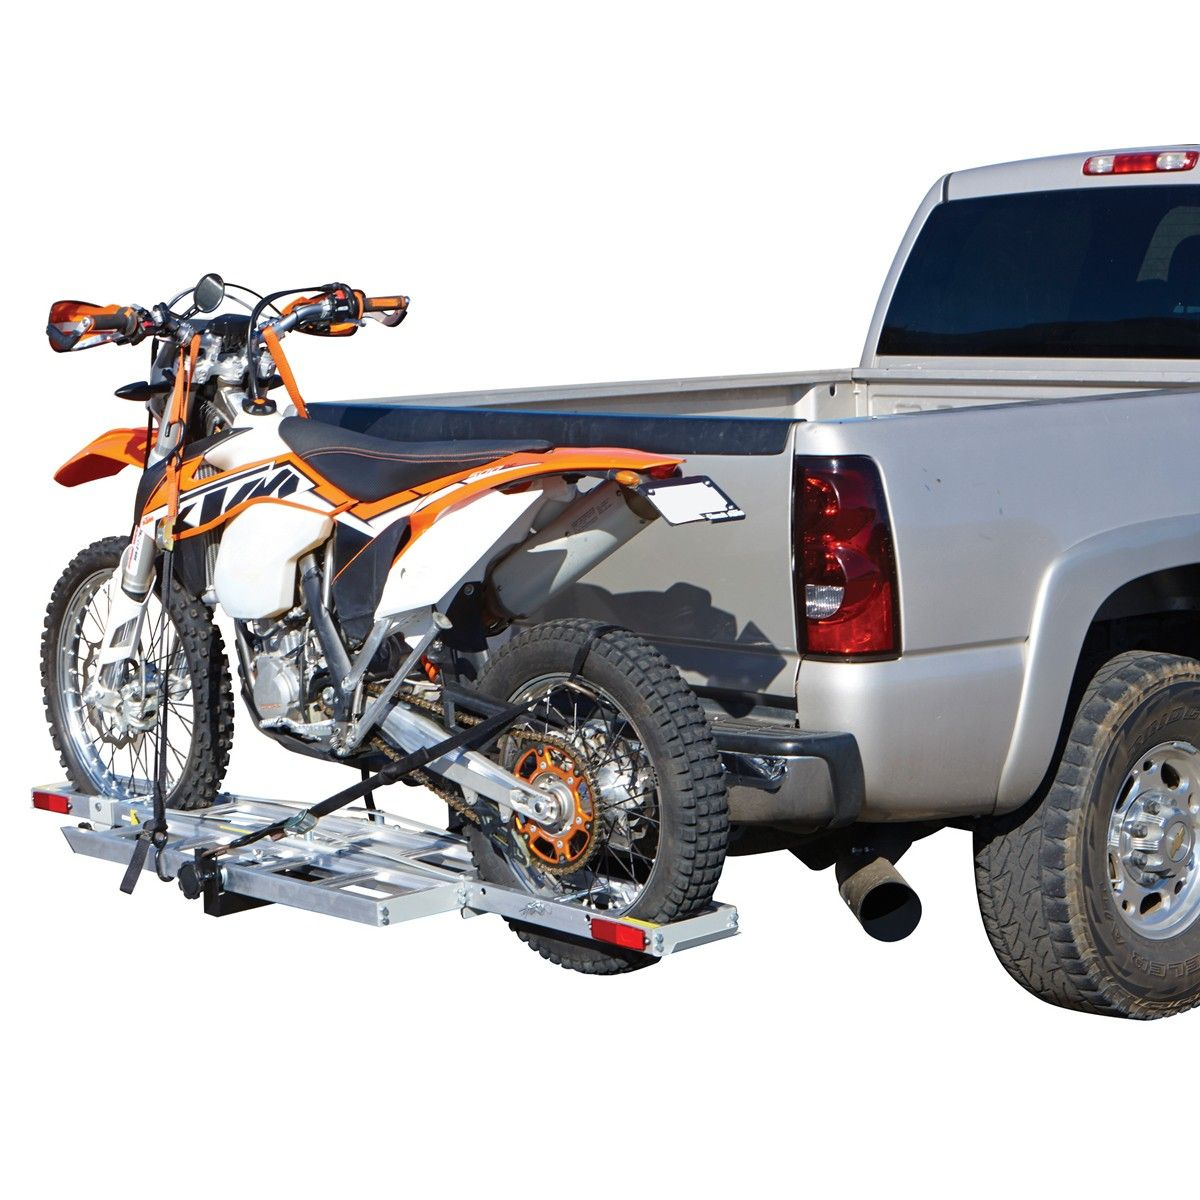 Motorcycle Scooter Dirt Bike Carrier Hauler Rack Ramp This